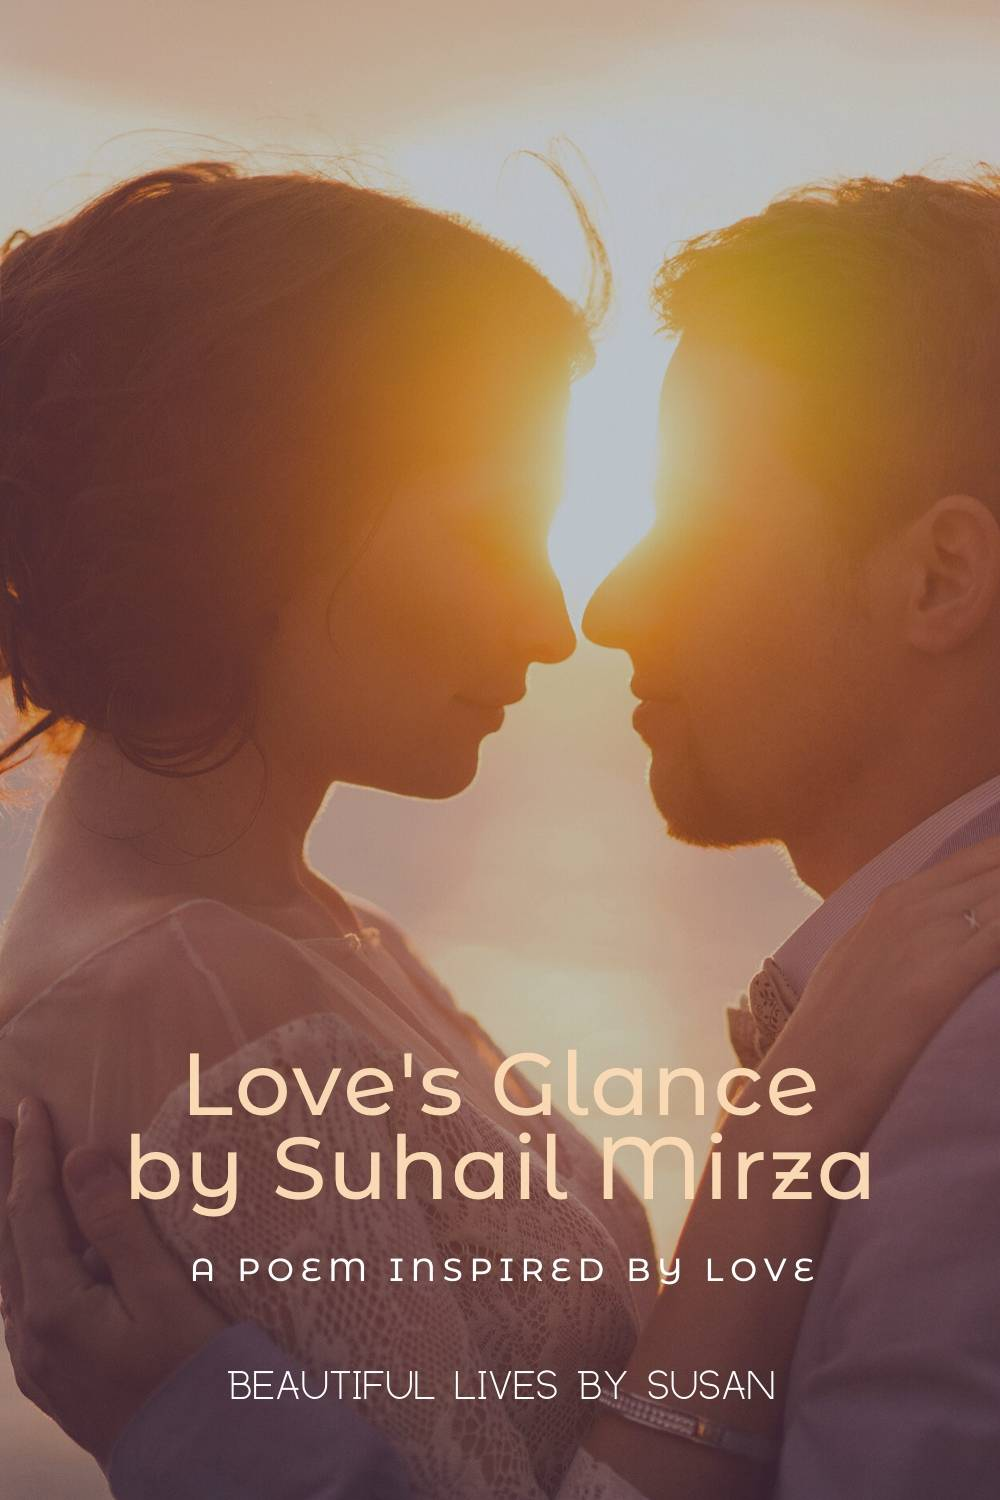 Love's Glance by Suhail Mirza